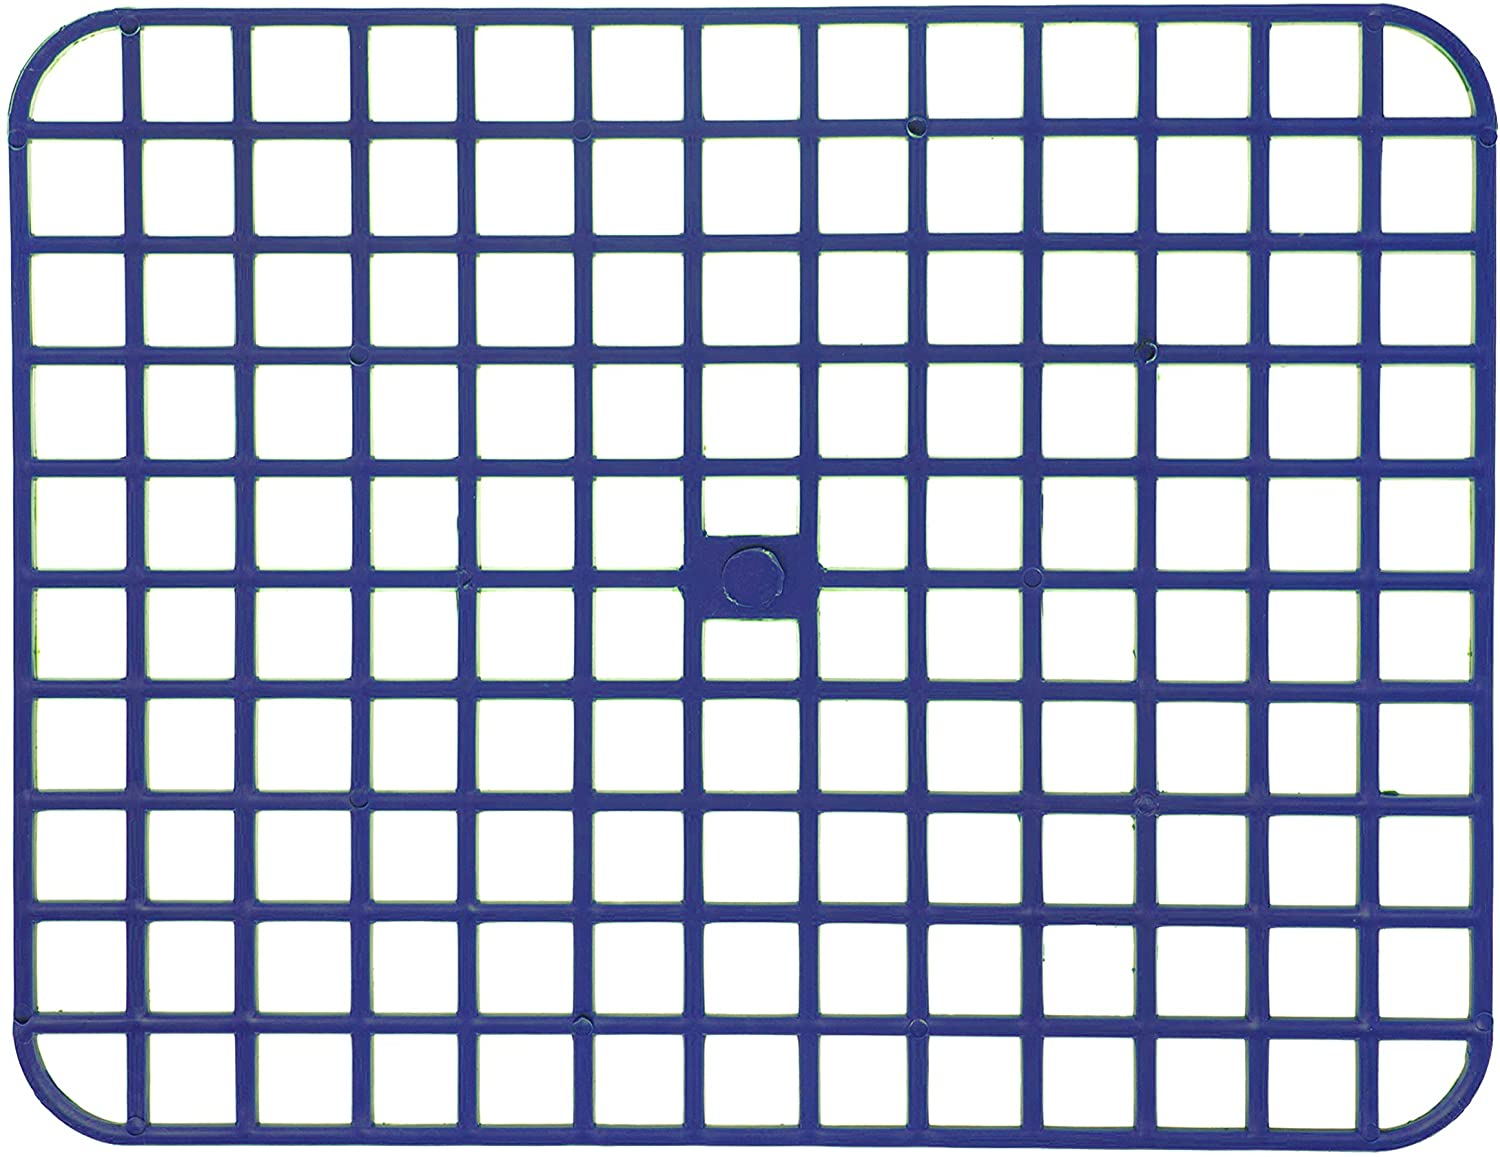 Kitchen Square Plastic Protector for Sink - Saver Mat - Cover Mats